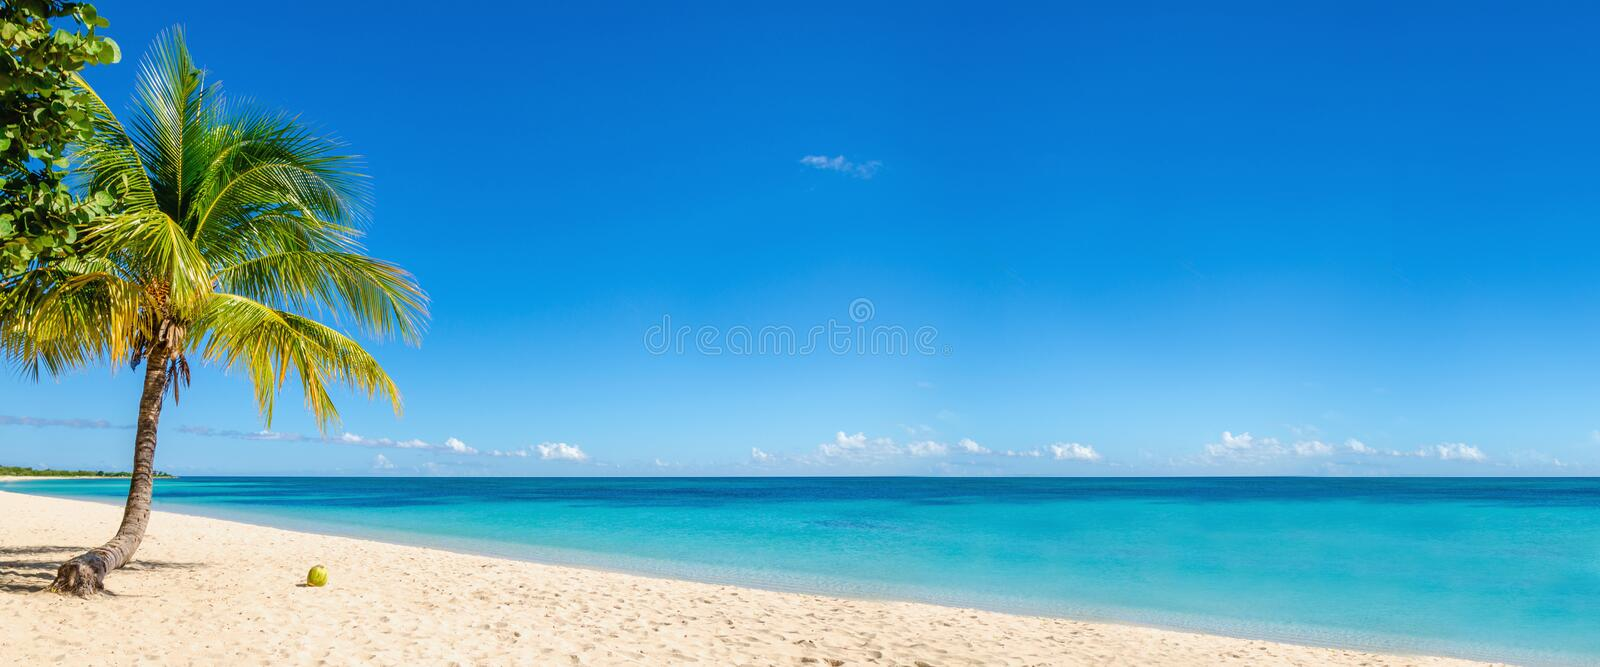 Exotic beach with coconut palm, Caribbean Islands royalty free stock images